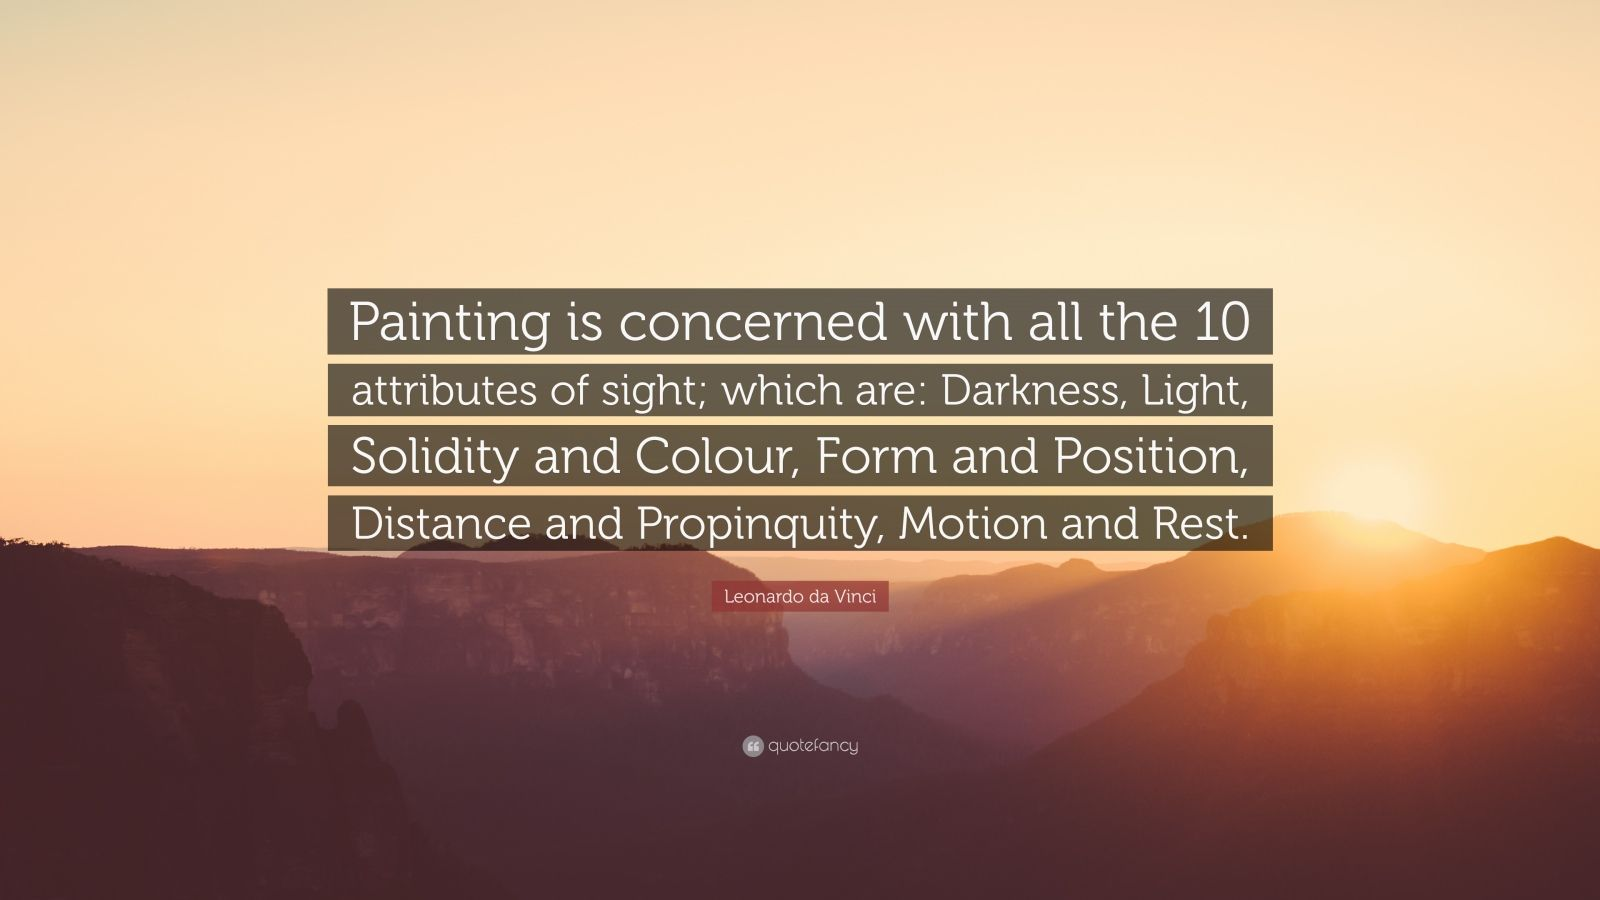 """Leonardo da Vinci Quote: """"Painting is concerned with all the 10 attributes of sight; which are: Darkness, Light, Solidity and Colour, Form and Position, Distance and Propinquity, Motion and Rest."""""""